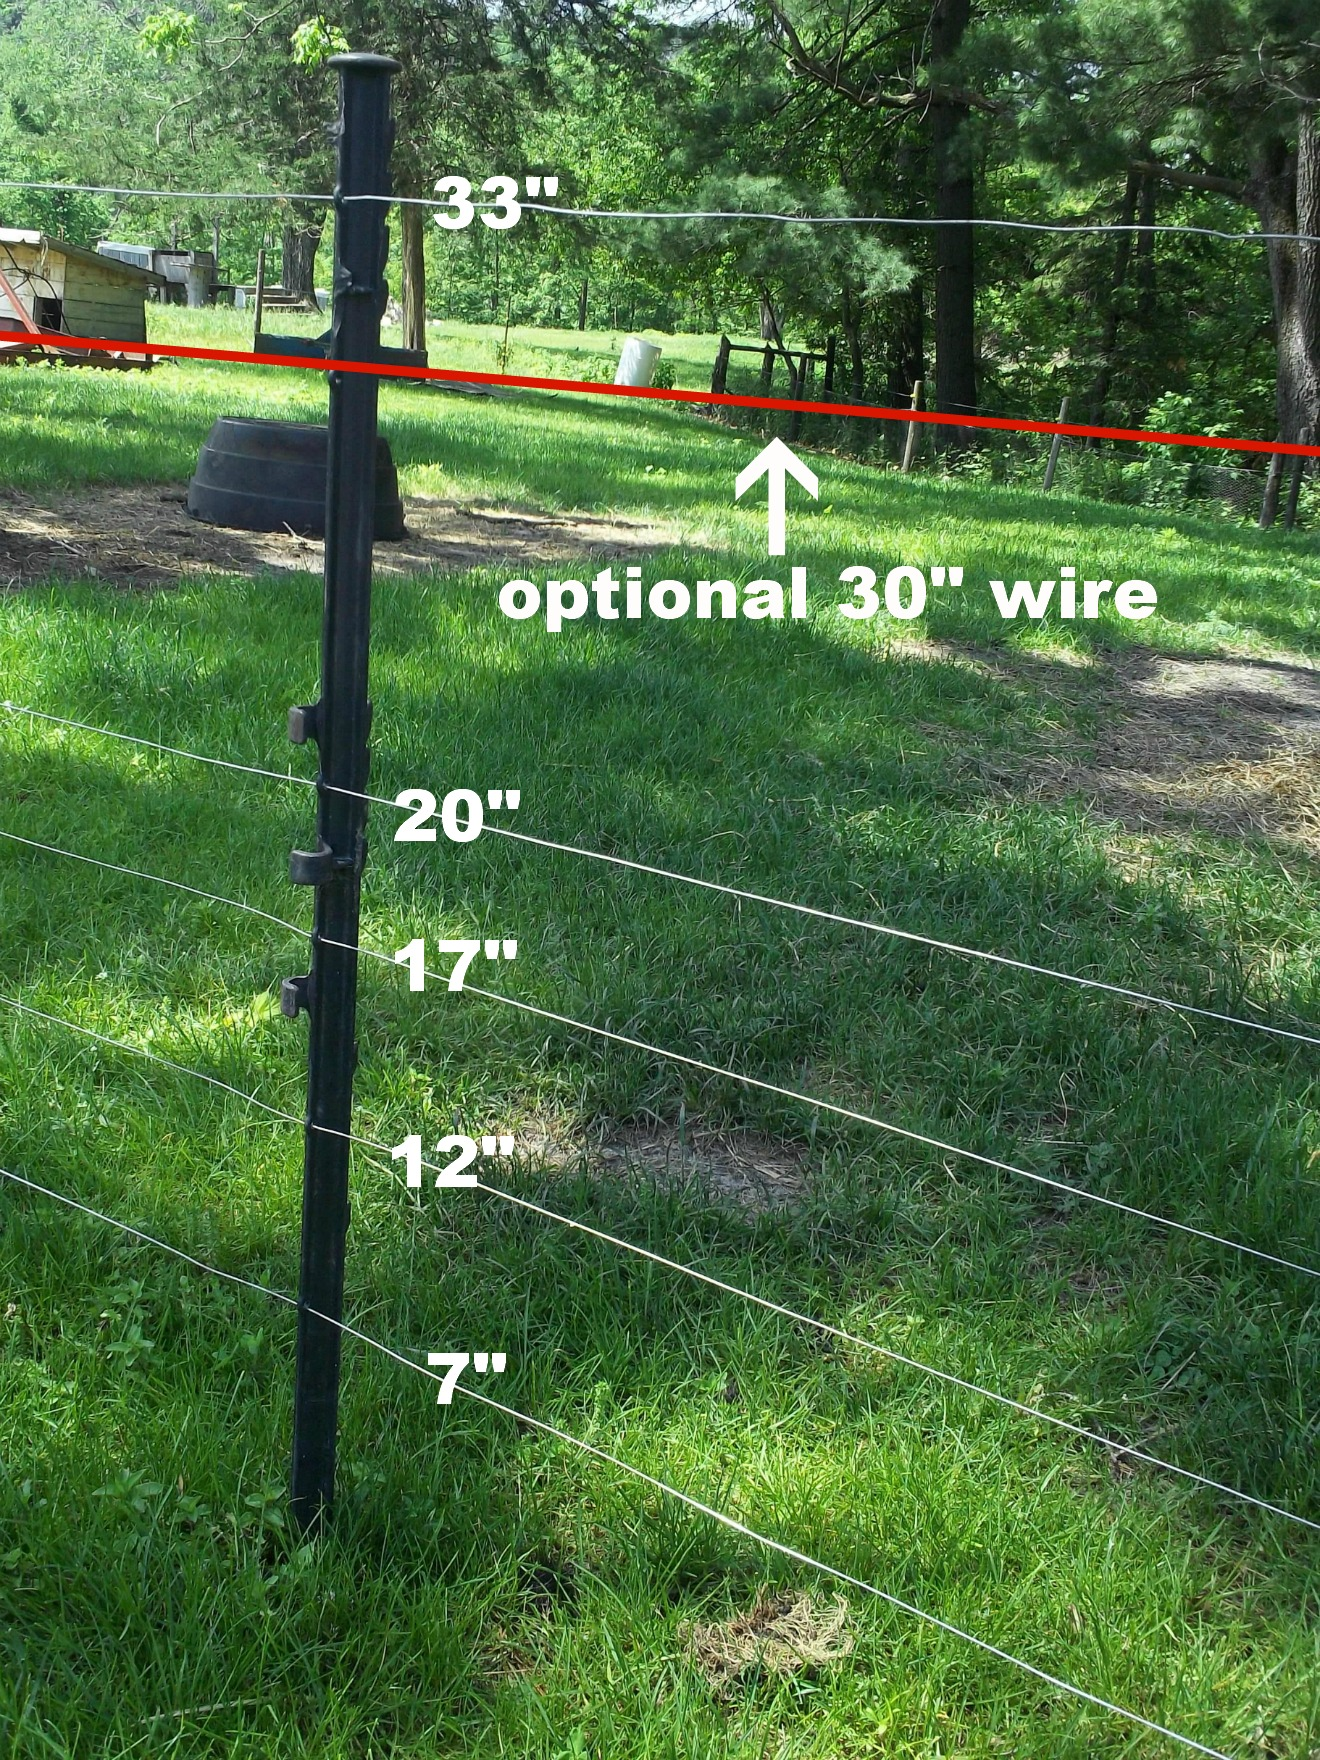 Goats Our Prairie Nest A Simple Life Page 2 The Fourwire Electric Fence System Allows Landowners To Control Deer Again Because This Paddock Was For Goat Kids As Opposed Adult We Had Free Posts At Disposal And Came Ready Stringing